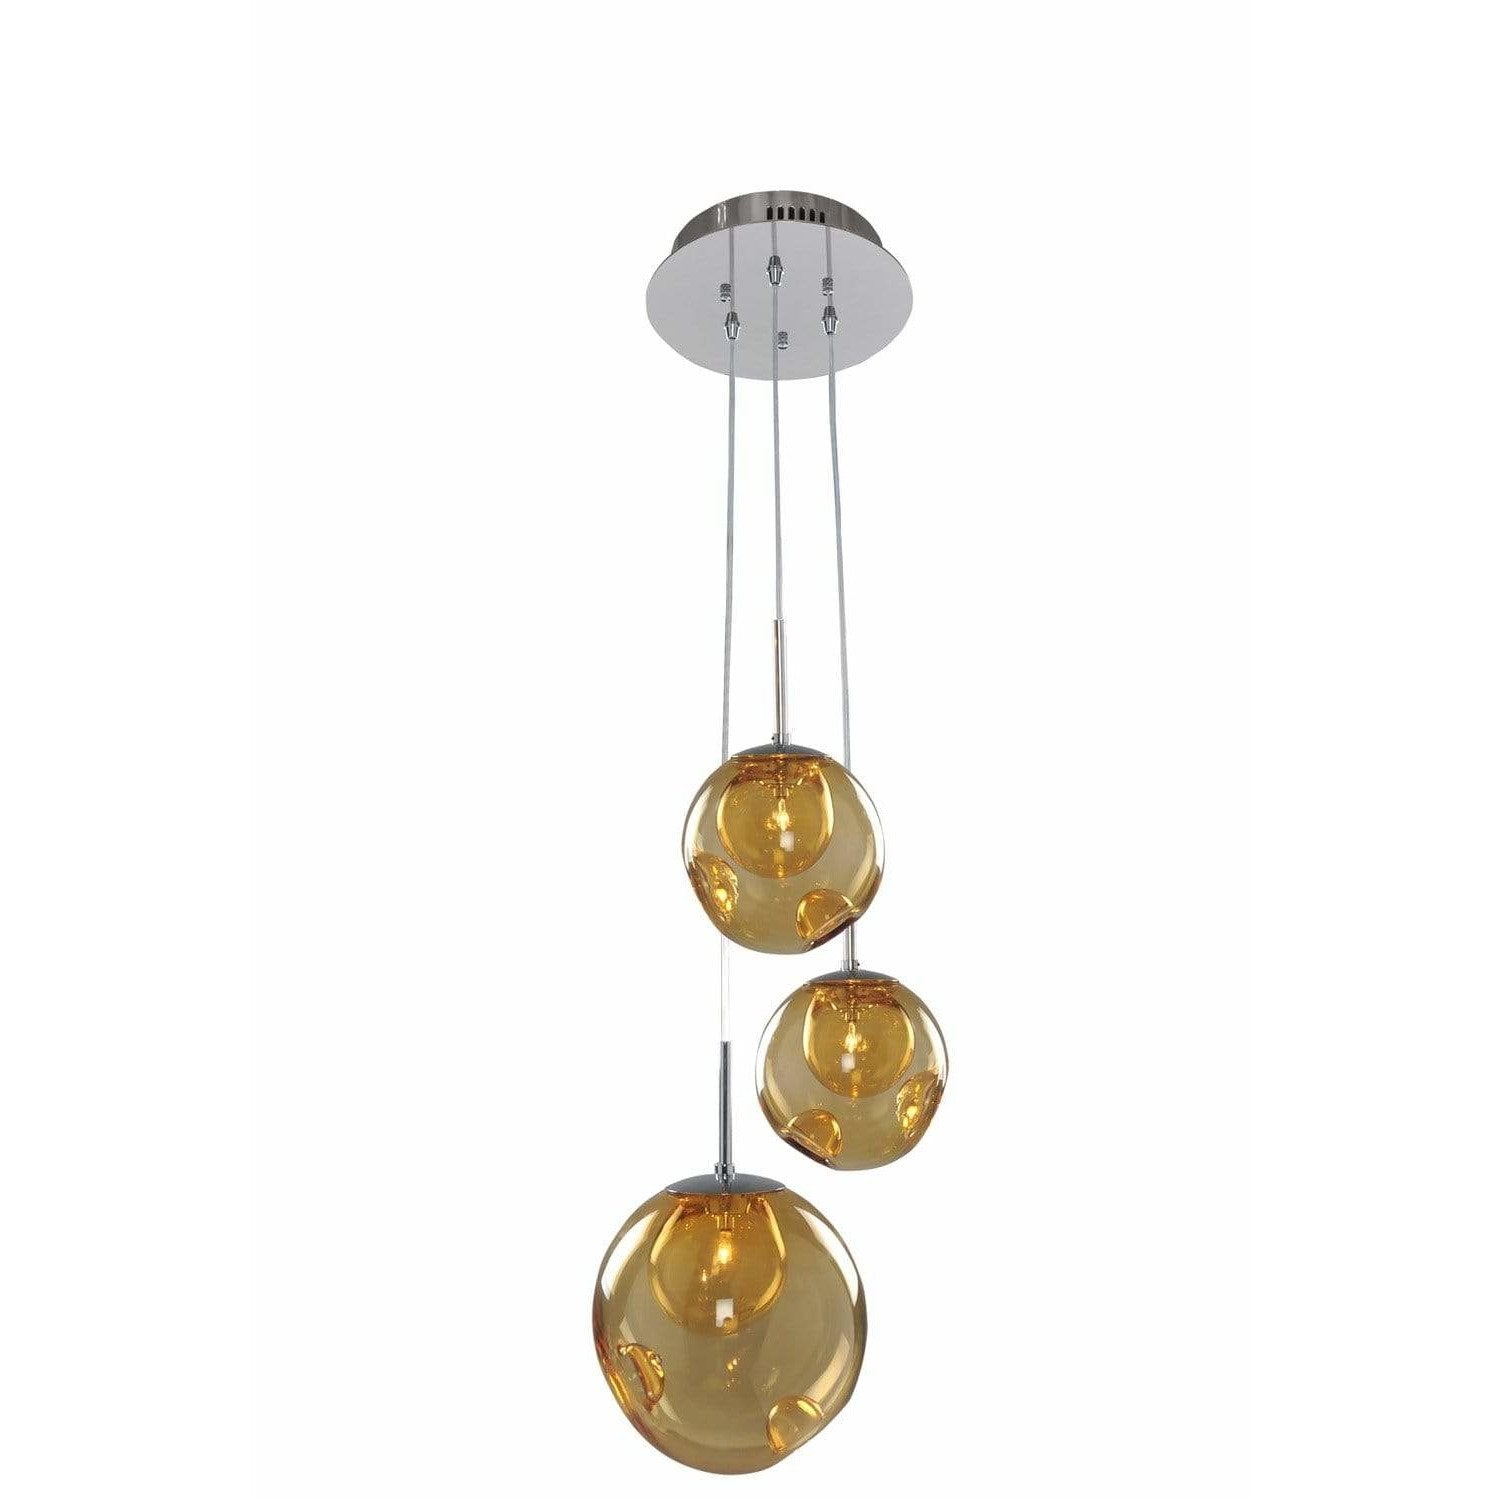 Kalco Lighting Pendants Chrome / Faux Calcite Standard Amber Glass Meteor 3 Light Pendant By Kalco Lighting 309540